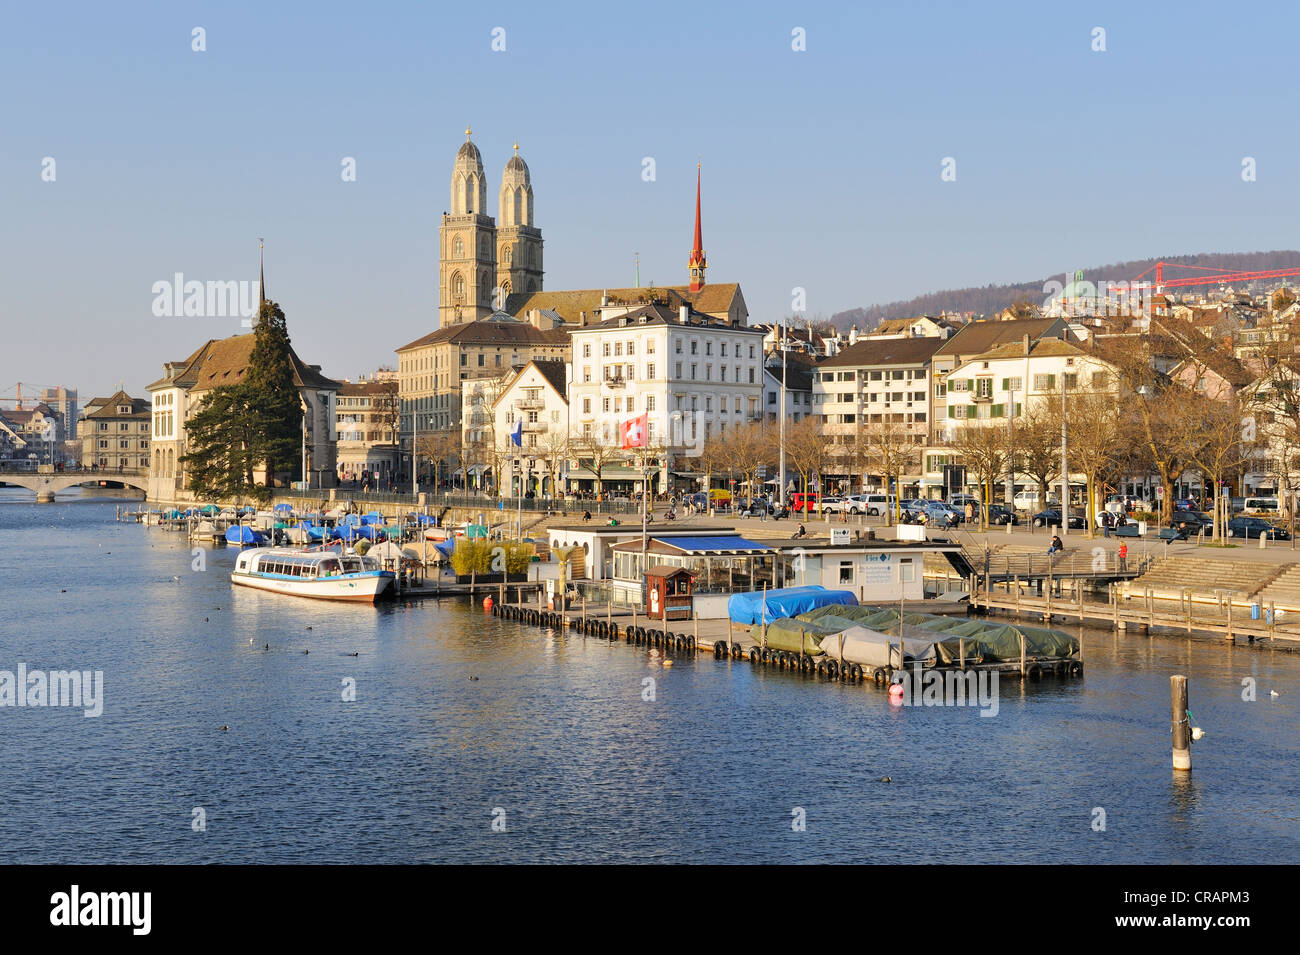 View from the Quai bridge over the Limmat river to the Limmatquai quay with the Grossmuenster great minster, Zurich - Stock Image